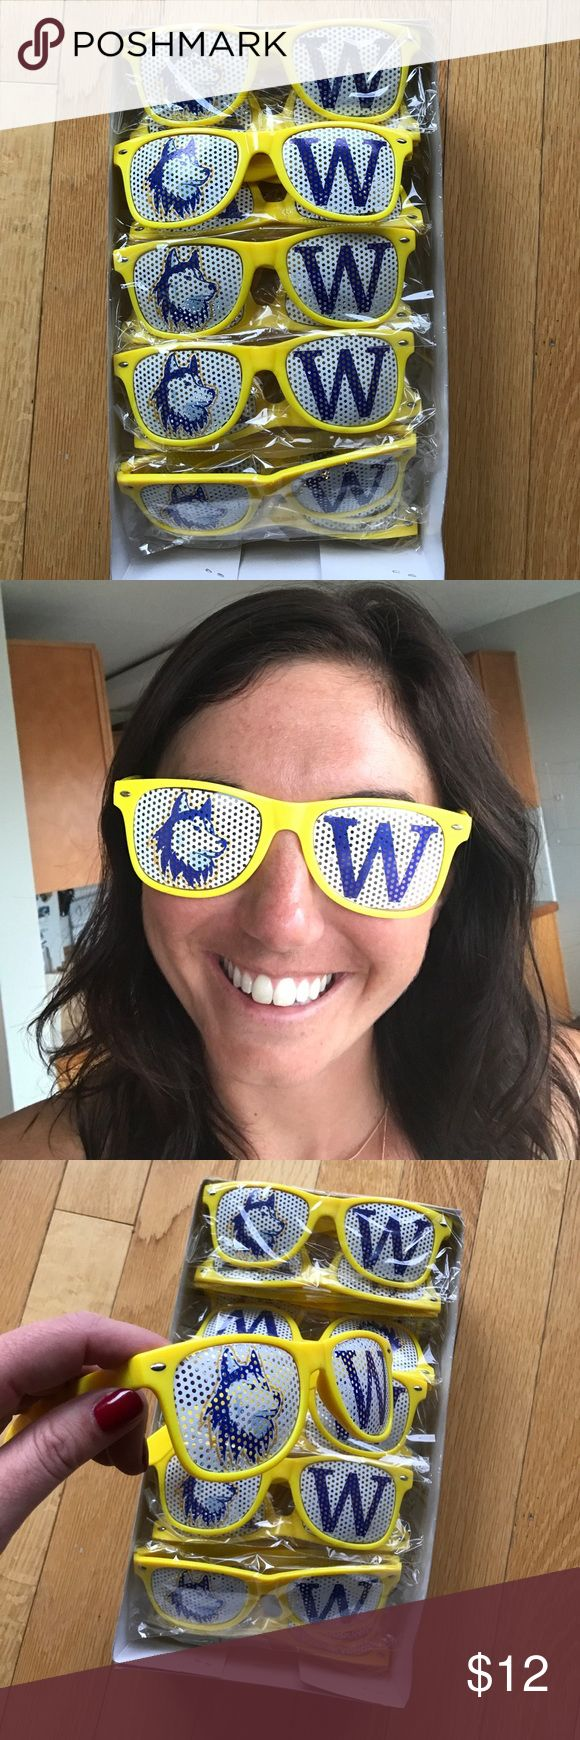 UW Husky Game Day Shades! UW Husky Game Day Shades! These are plastic, but made well. Been wearing these to husky football games for years! 💛💜💛💜 Accessories Sunglasses